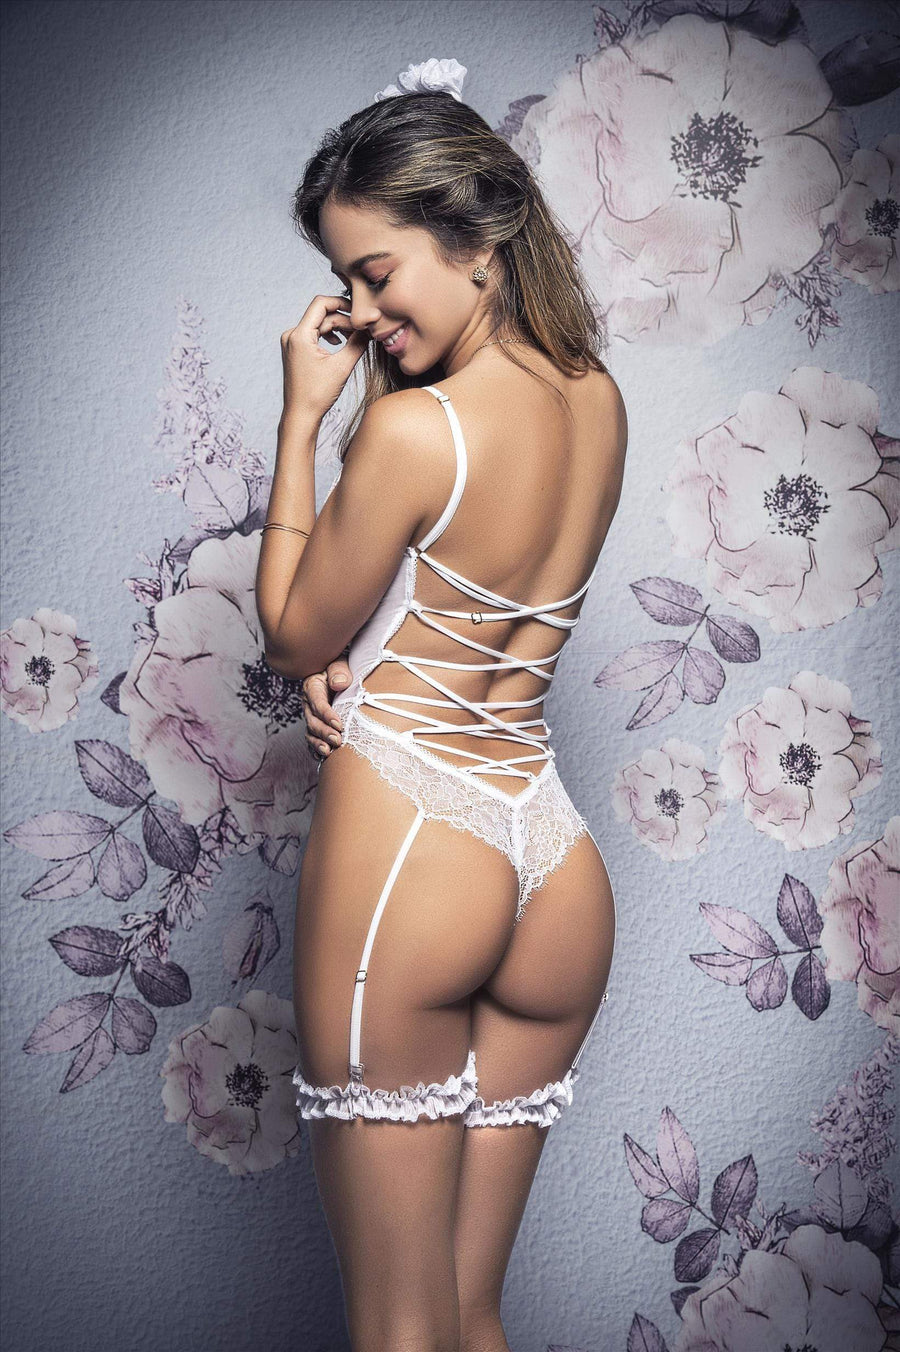 mapale White Bridal Eyelash Lace Teddy w/ Garter Details Lingerie White Bridal Eyelash Lace Teddy w/ Garter Details Lingerie | SHOP NOW | Apparel & Accessories > Clothing > Underwear & Socks > Lingerie